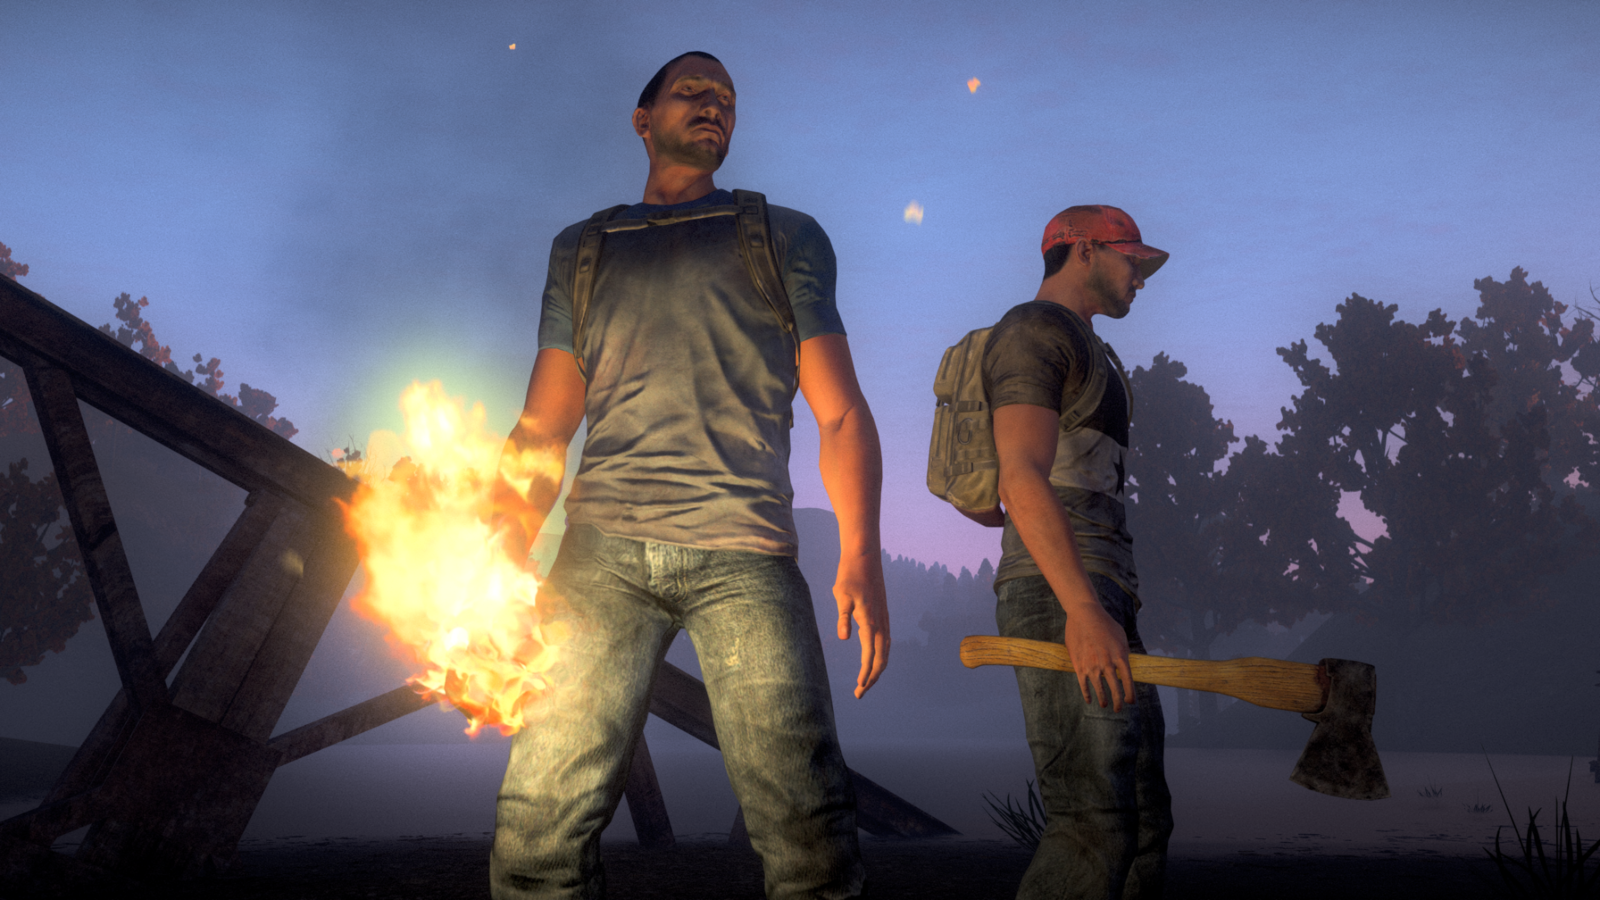 CrazyBlog: Download H1Z1 Full for free with multiplayer